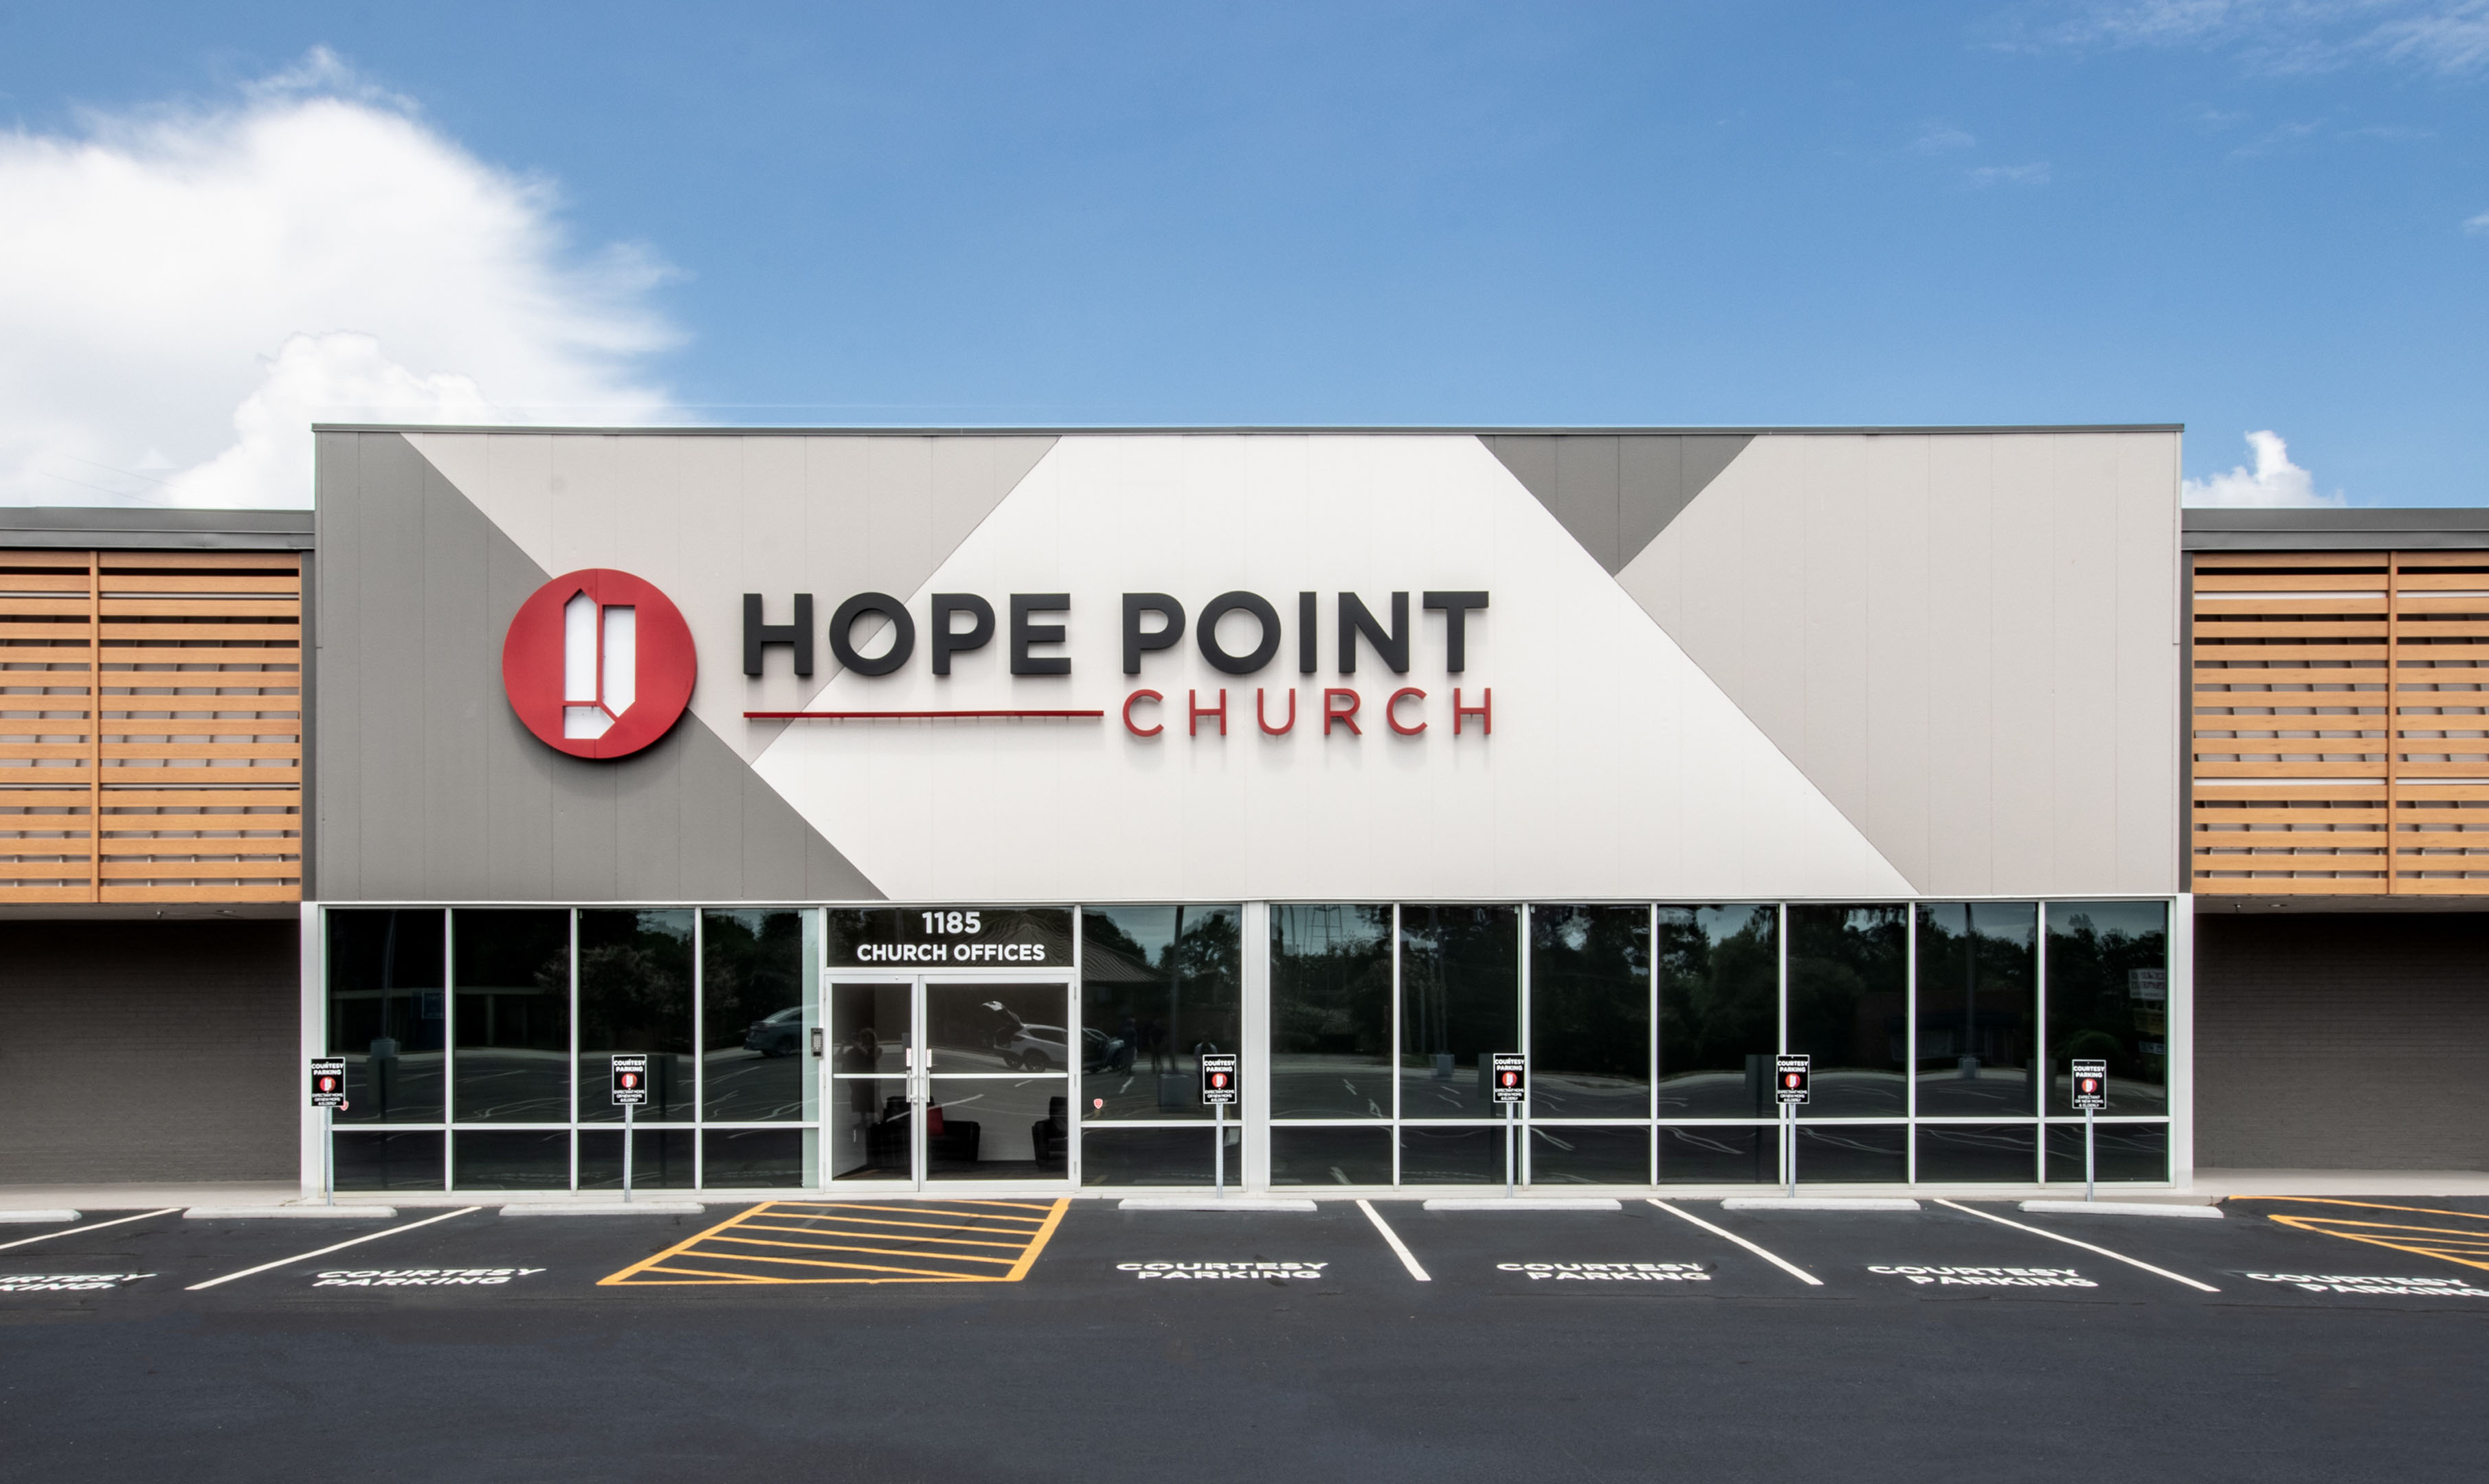 Hope Point Church